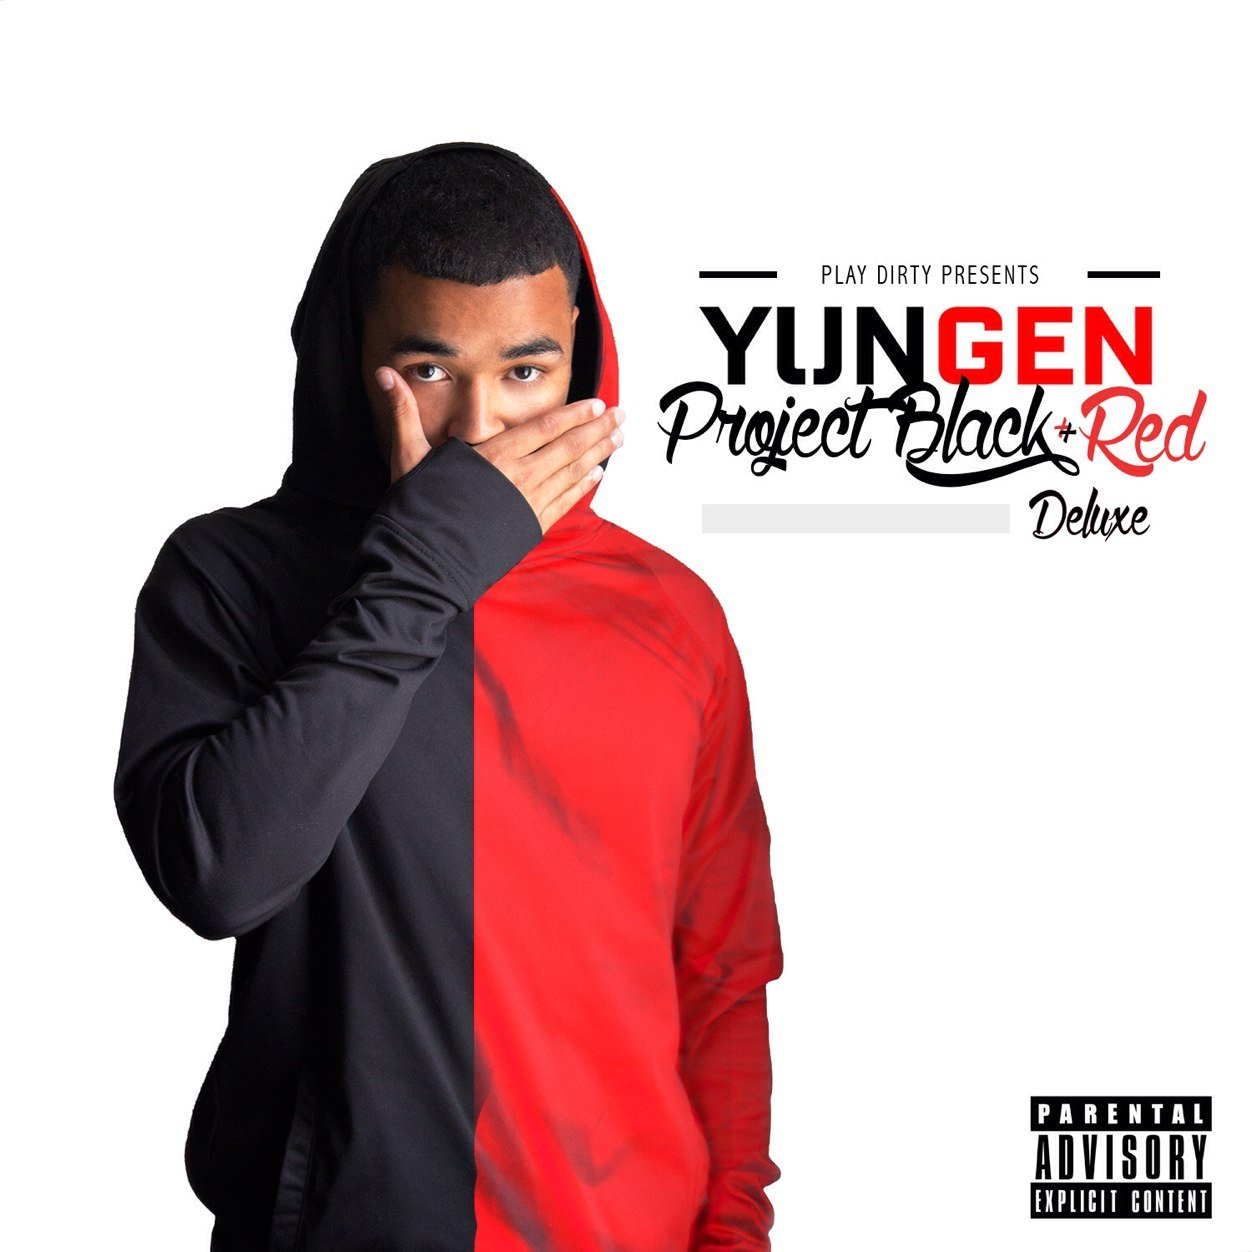 BRITHOPTV: [New Release] Yungen  (@YungenPlayDirty) - 'Project Black & Red' Album OUT NOW! [Rel. 21/09/14] | #UKRap #UKHipHop